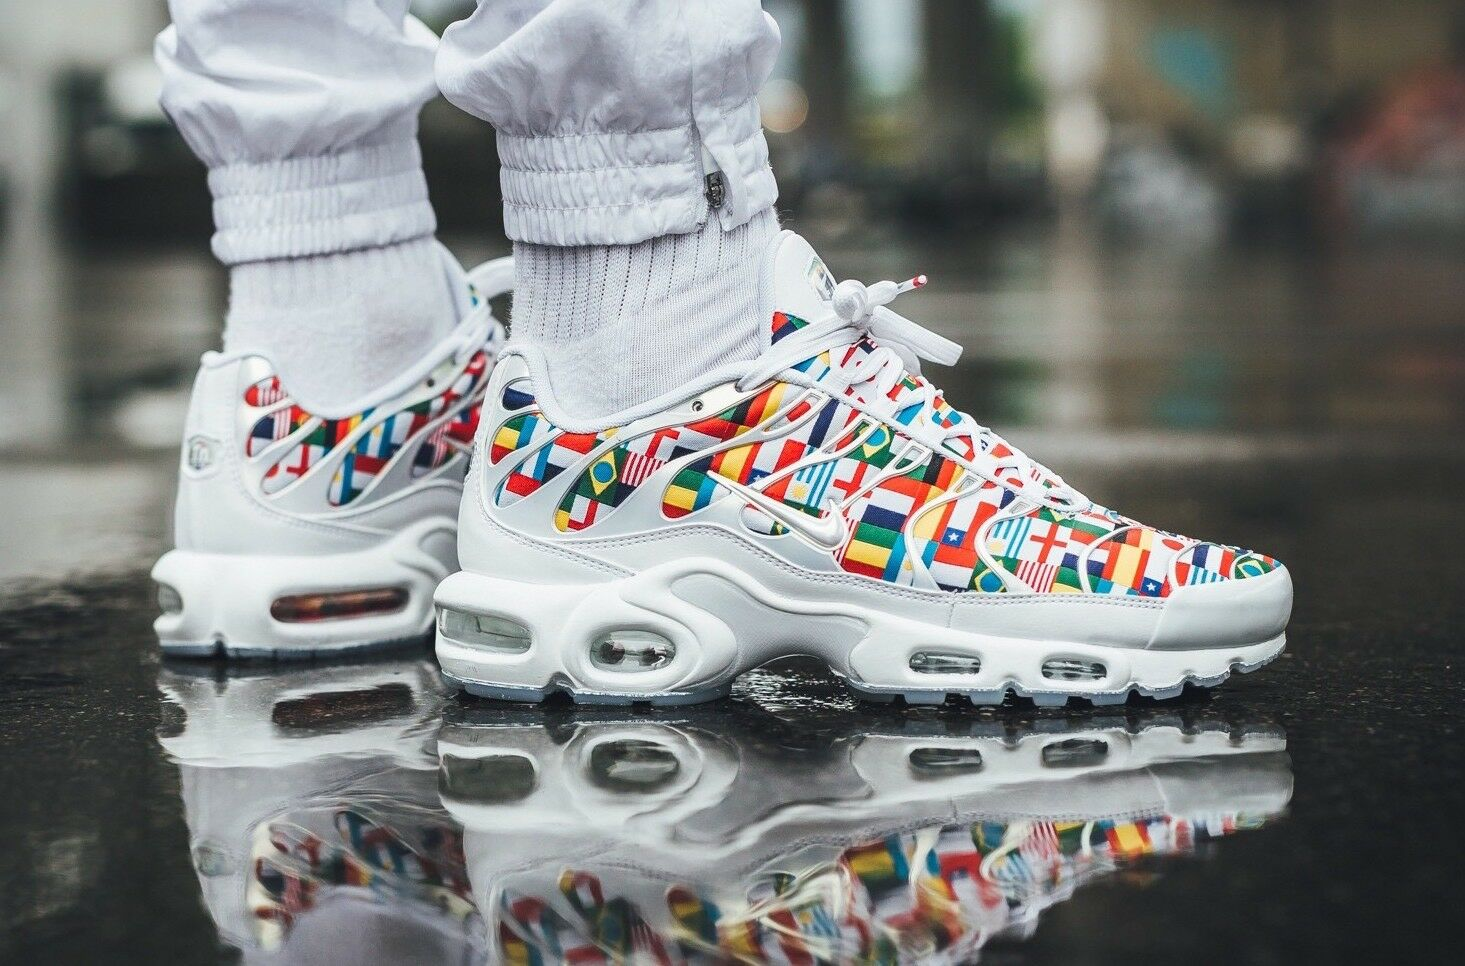 Nike US Air Max Plus One World 5 5 World US Nike Uomo 6.5 US WMNS World Cup   592398